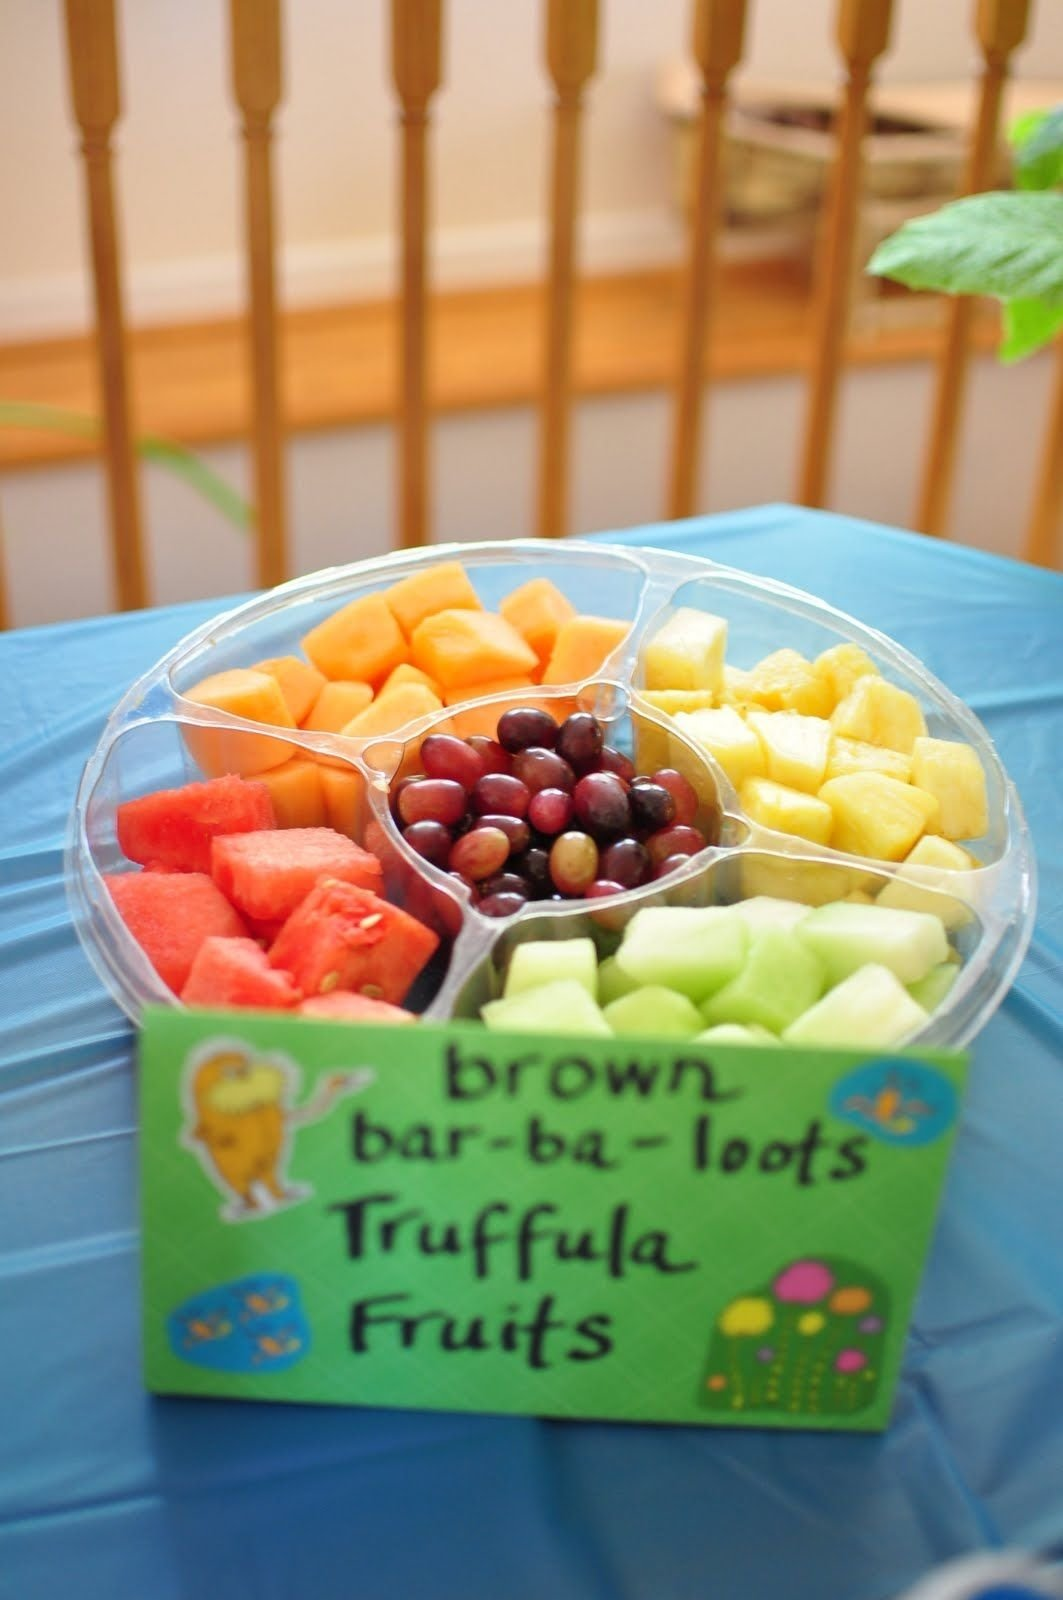 10 Unique Dr Seuss Baby Shower Food Ideas dr seuss themed party food we got lazy and bought the costco 2020